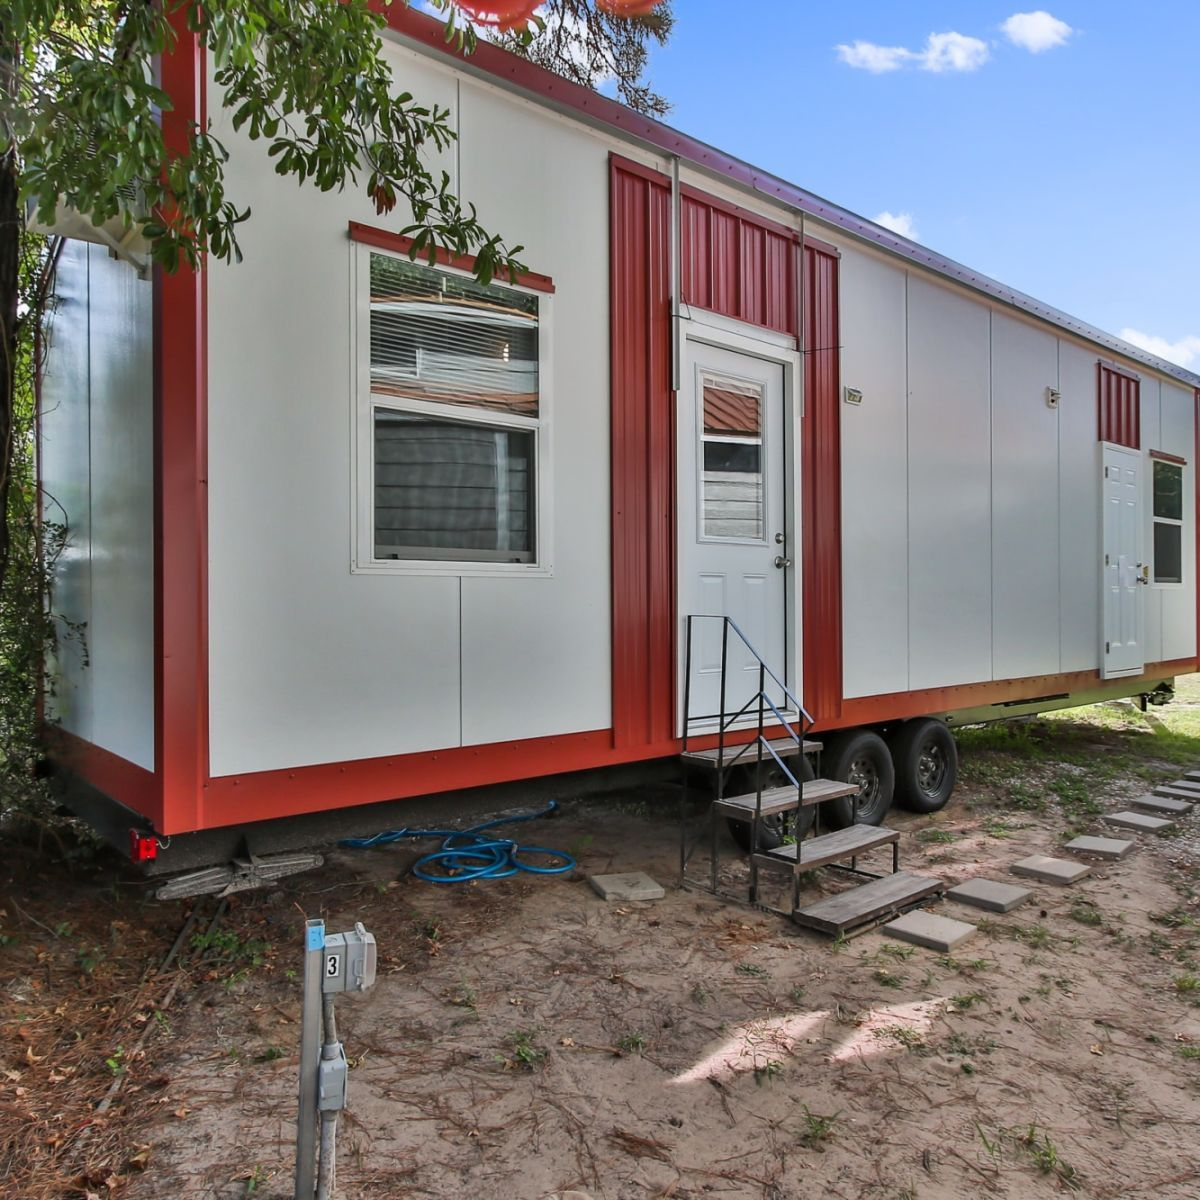 the big texas  34' tiny home with 2 ground floor bedrooms